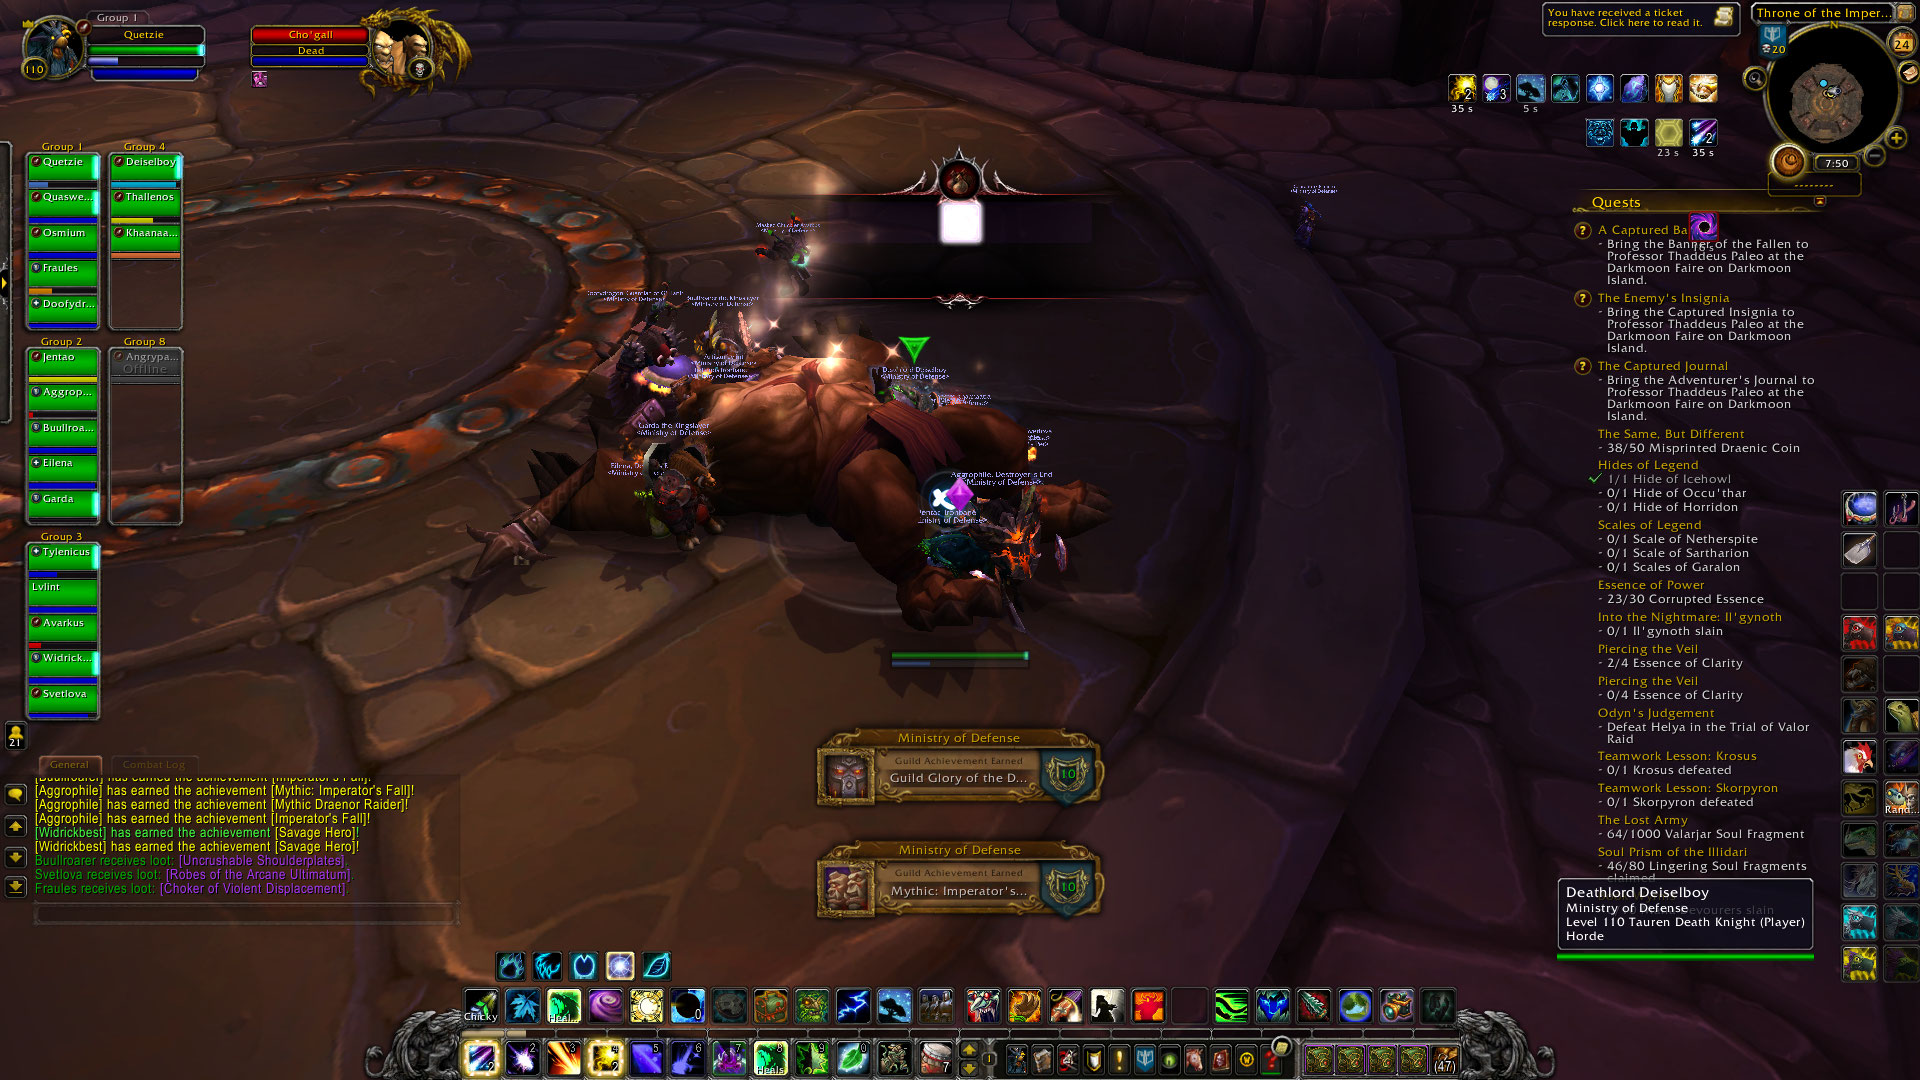 glory of the draenor raider run